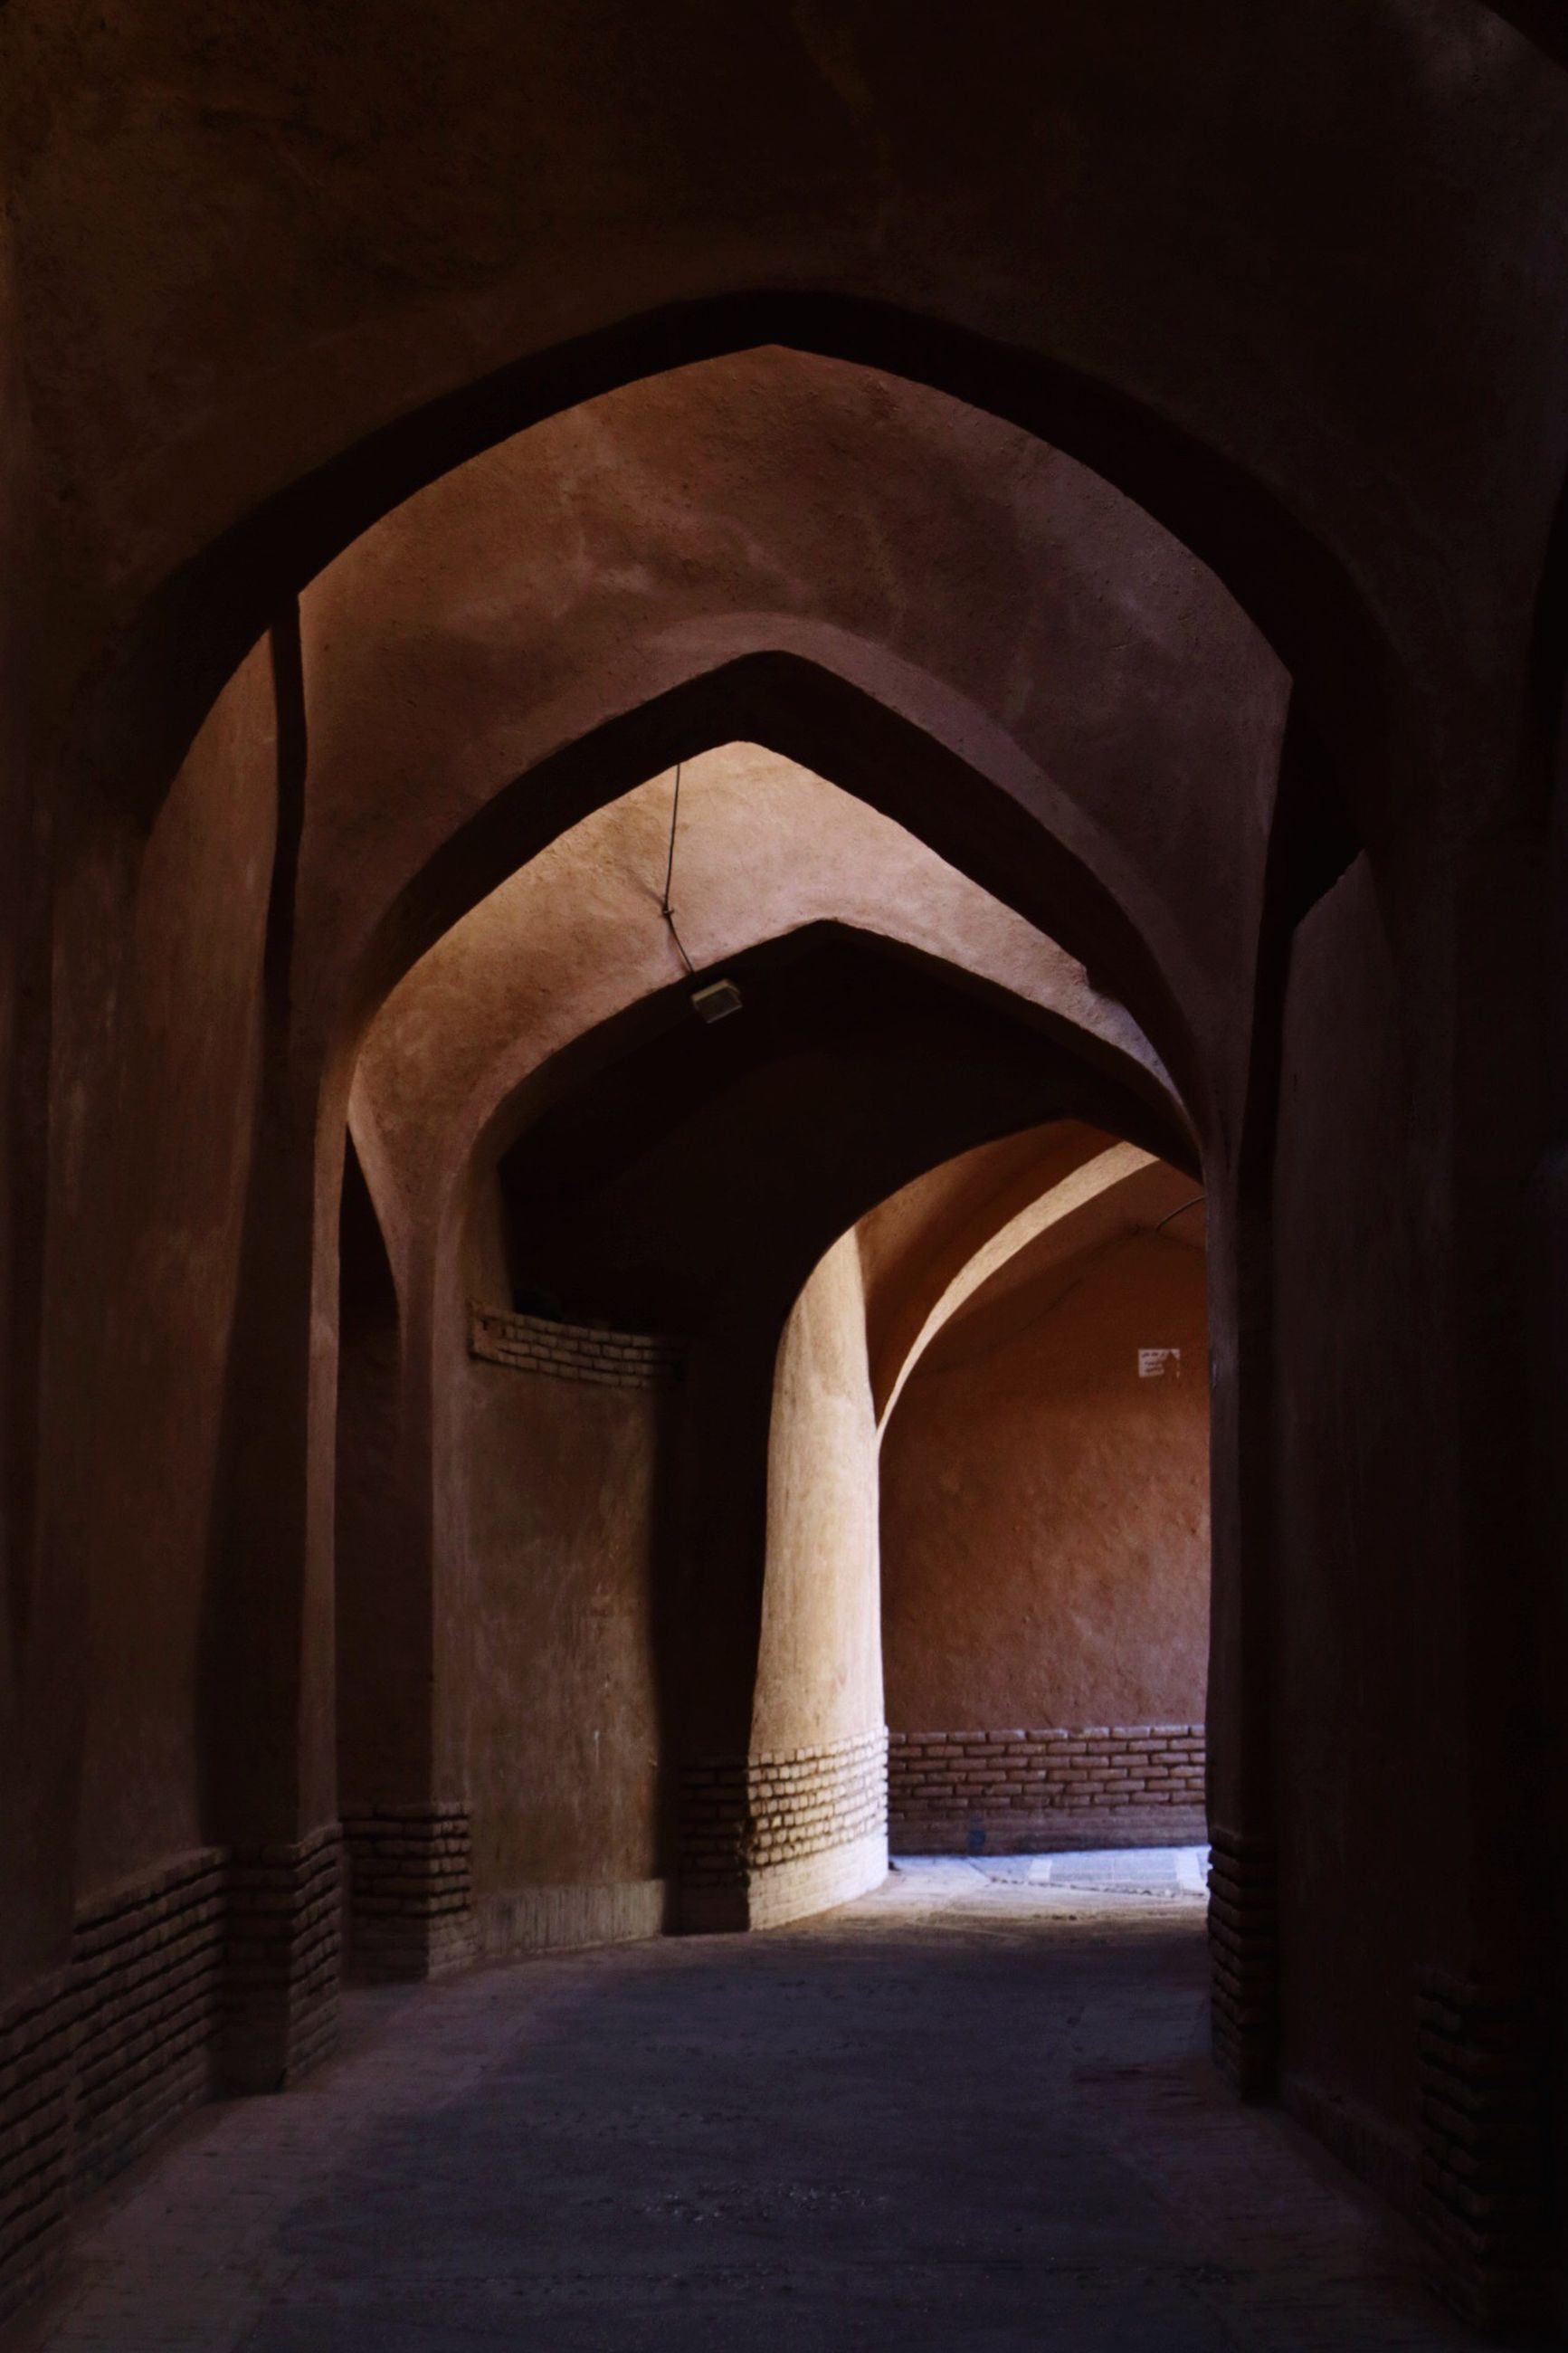 arch, indoors, history, architecture, travel destinations, architectural column, built structure, archway, no people, day, illuminated